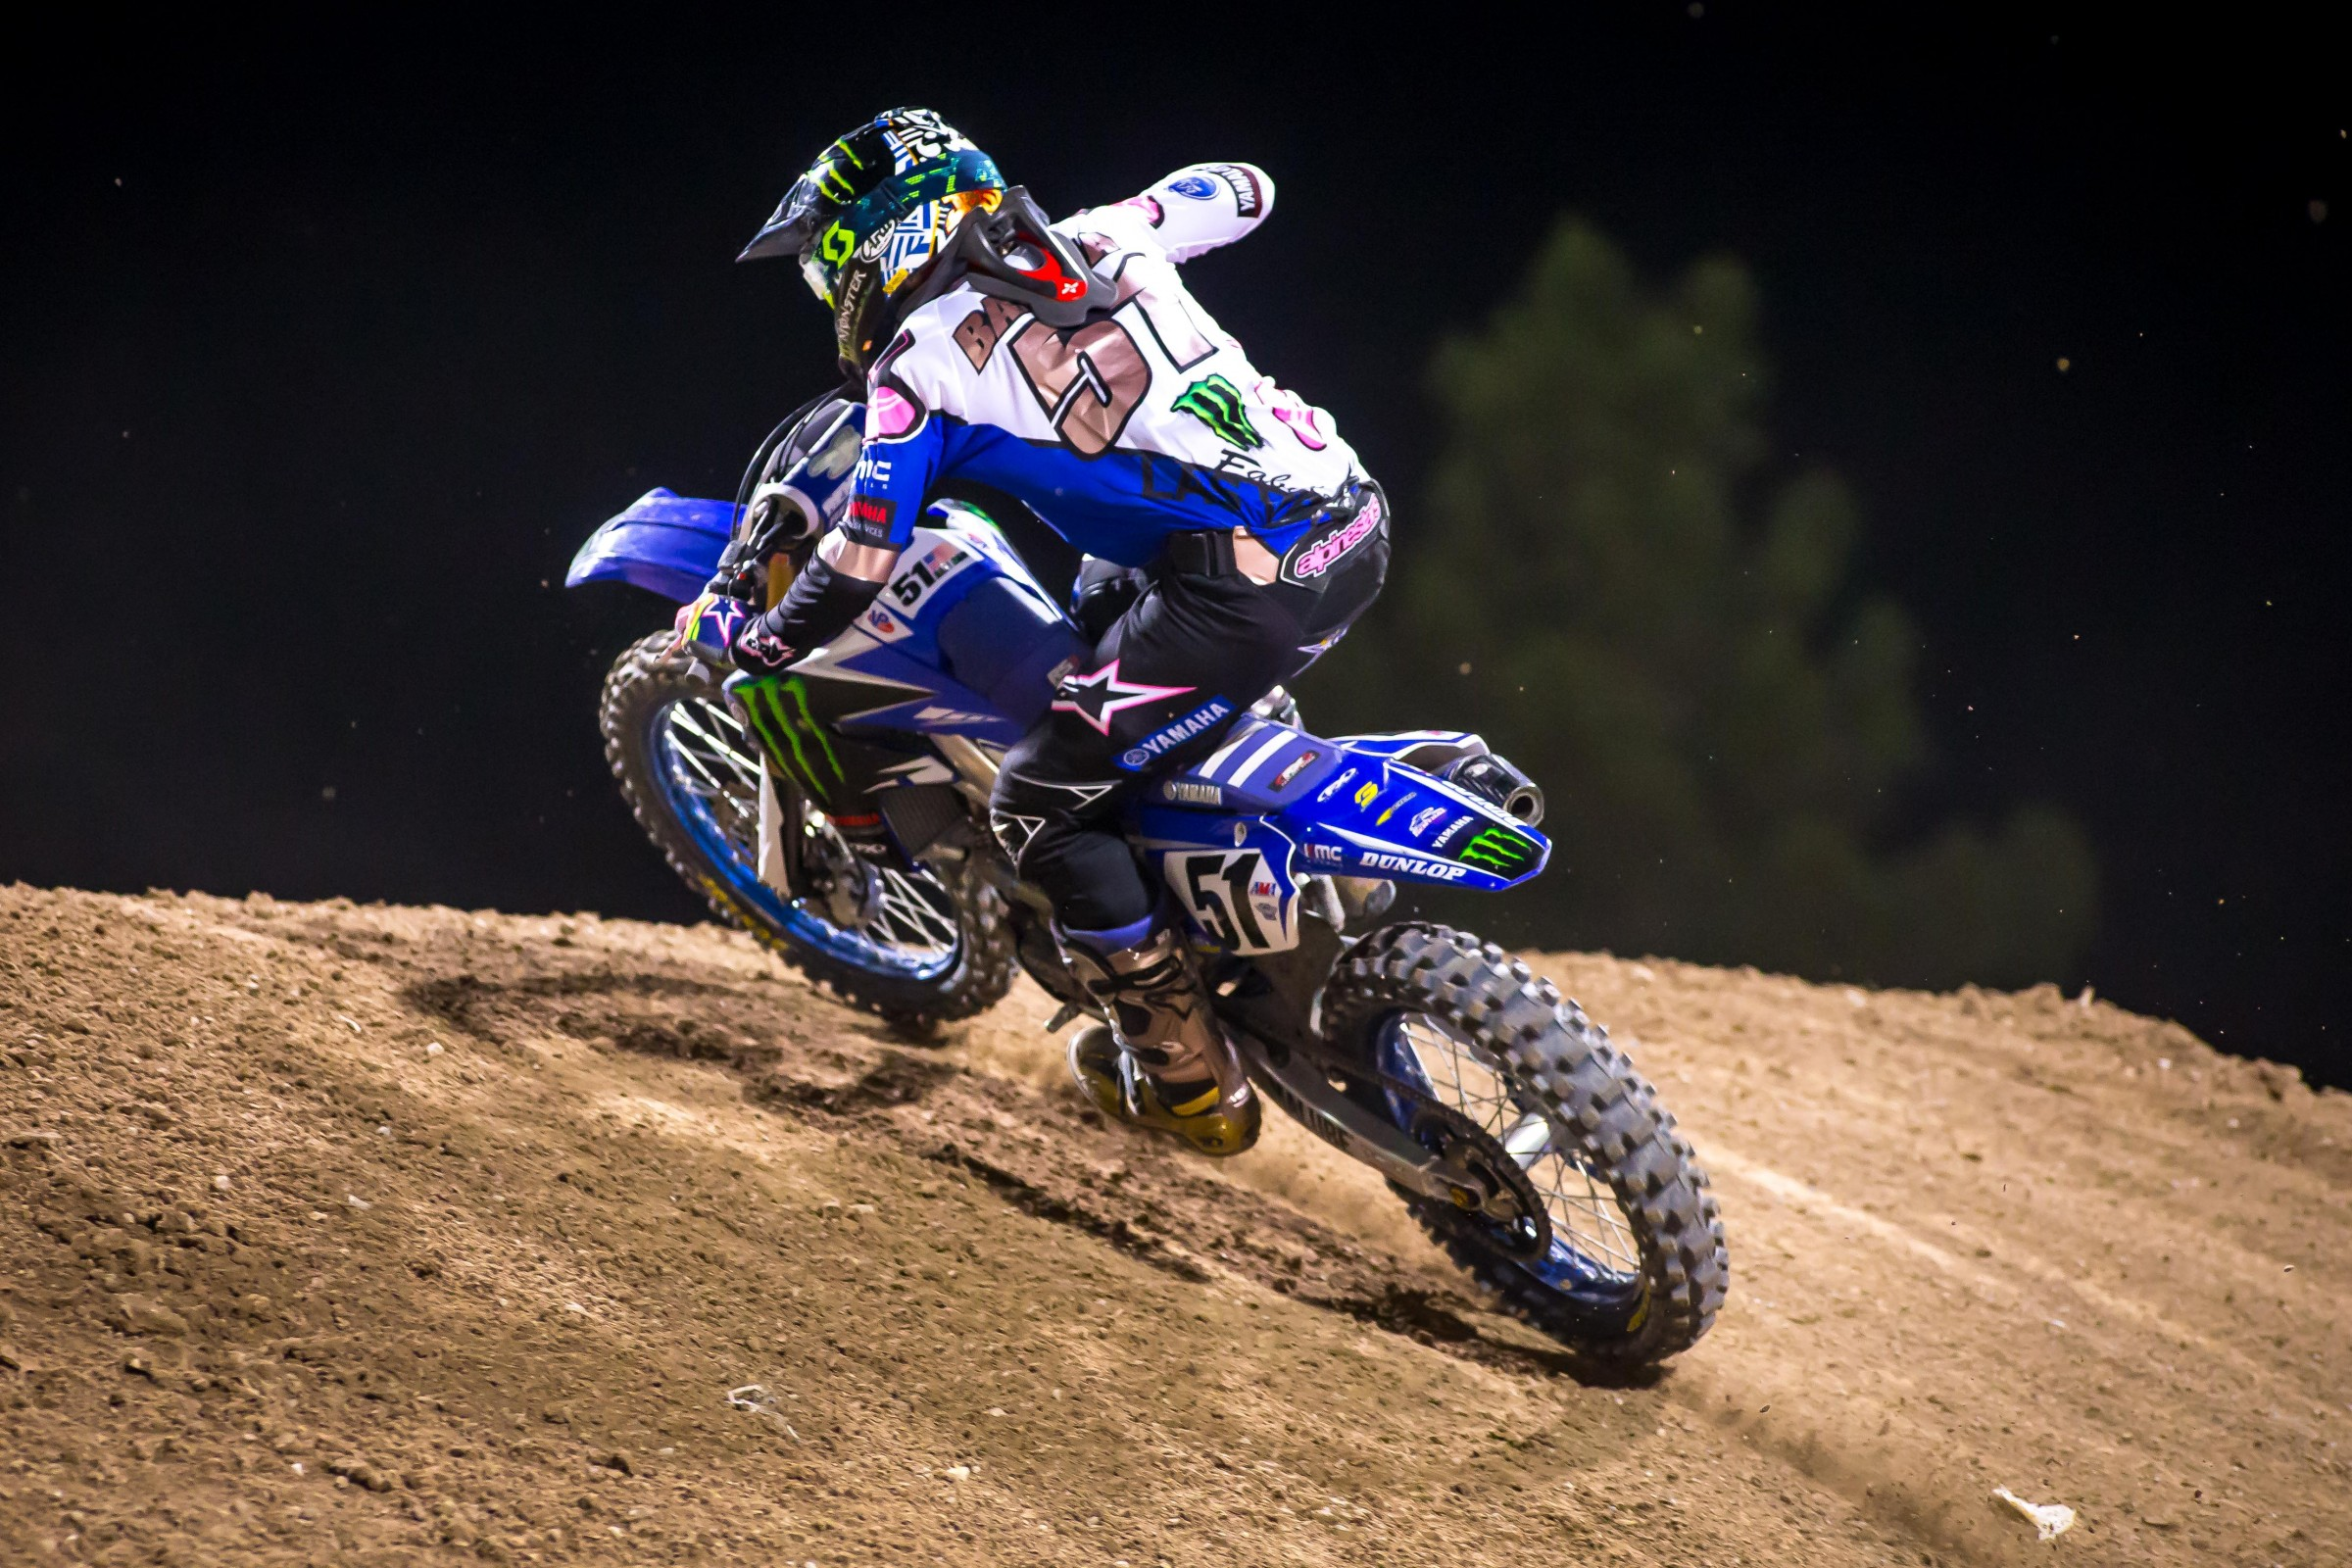 Barcia was signed to race the rest of the year with Monster Energy/Factory Yamaha after Millsaps announced his retirement.